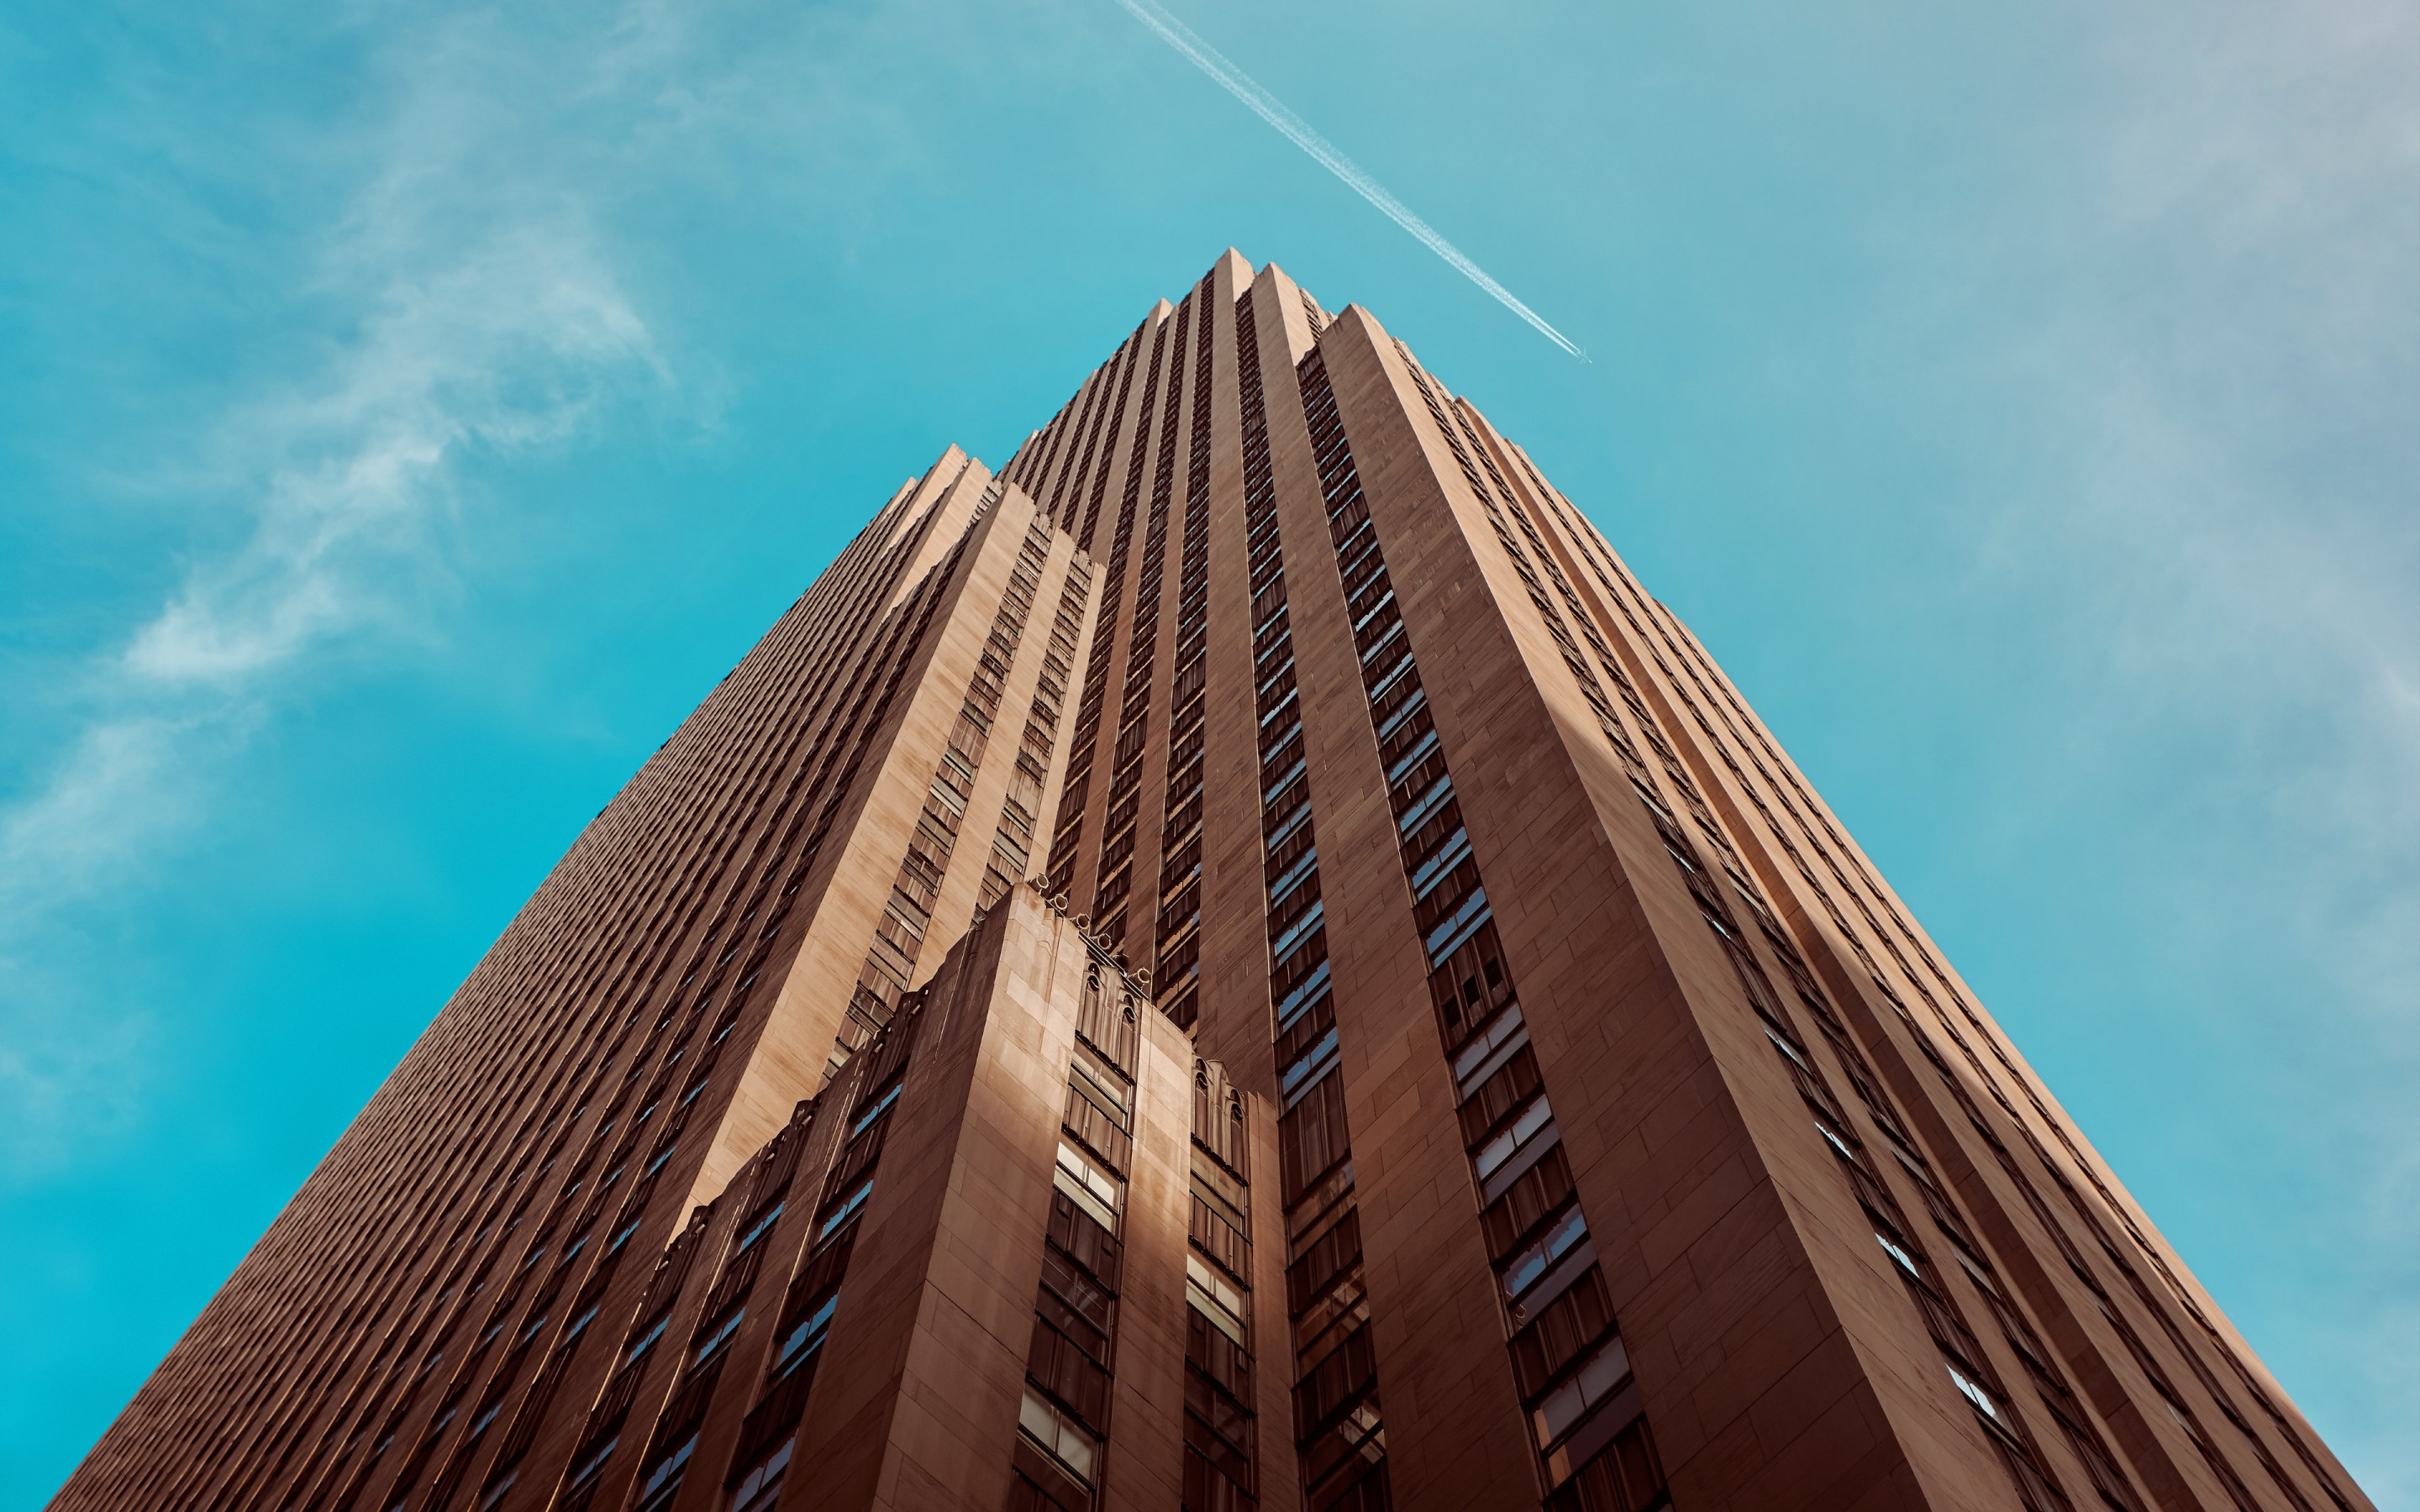 Rockefeller building touching the sky | 2880x1800 wallpaper